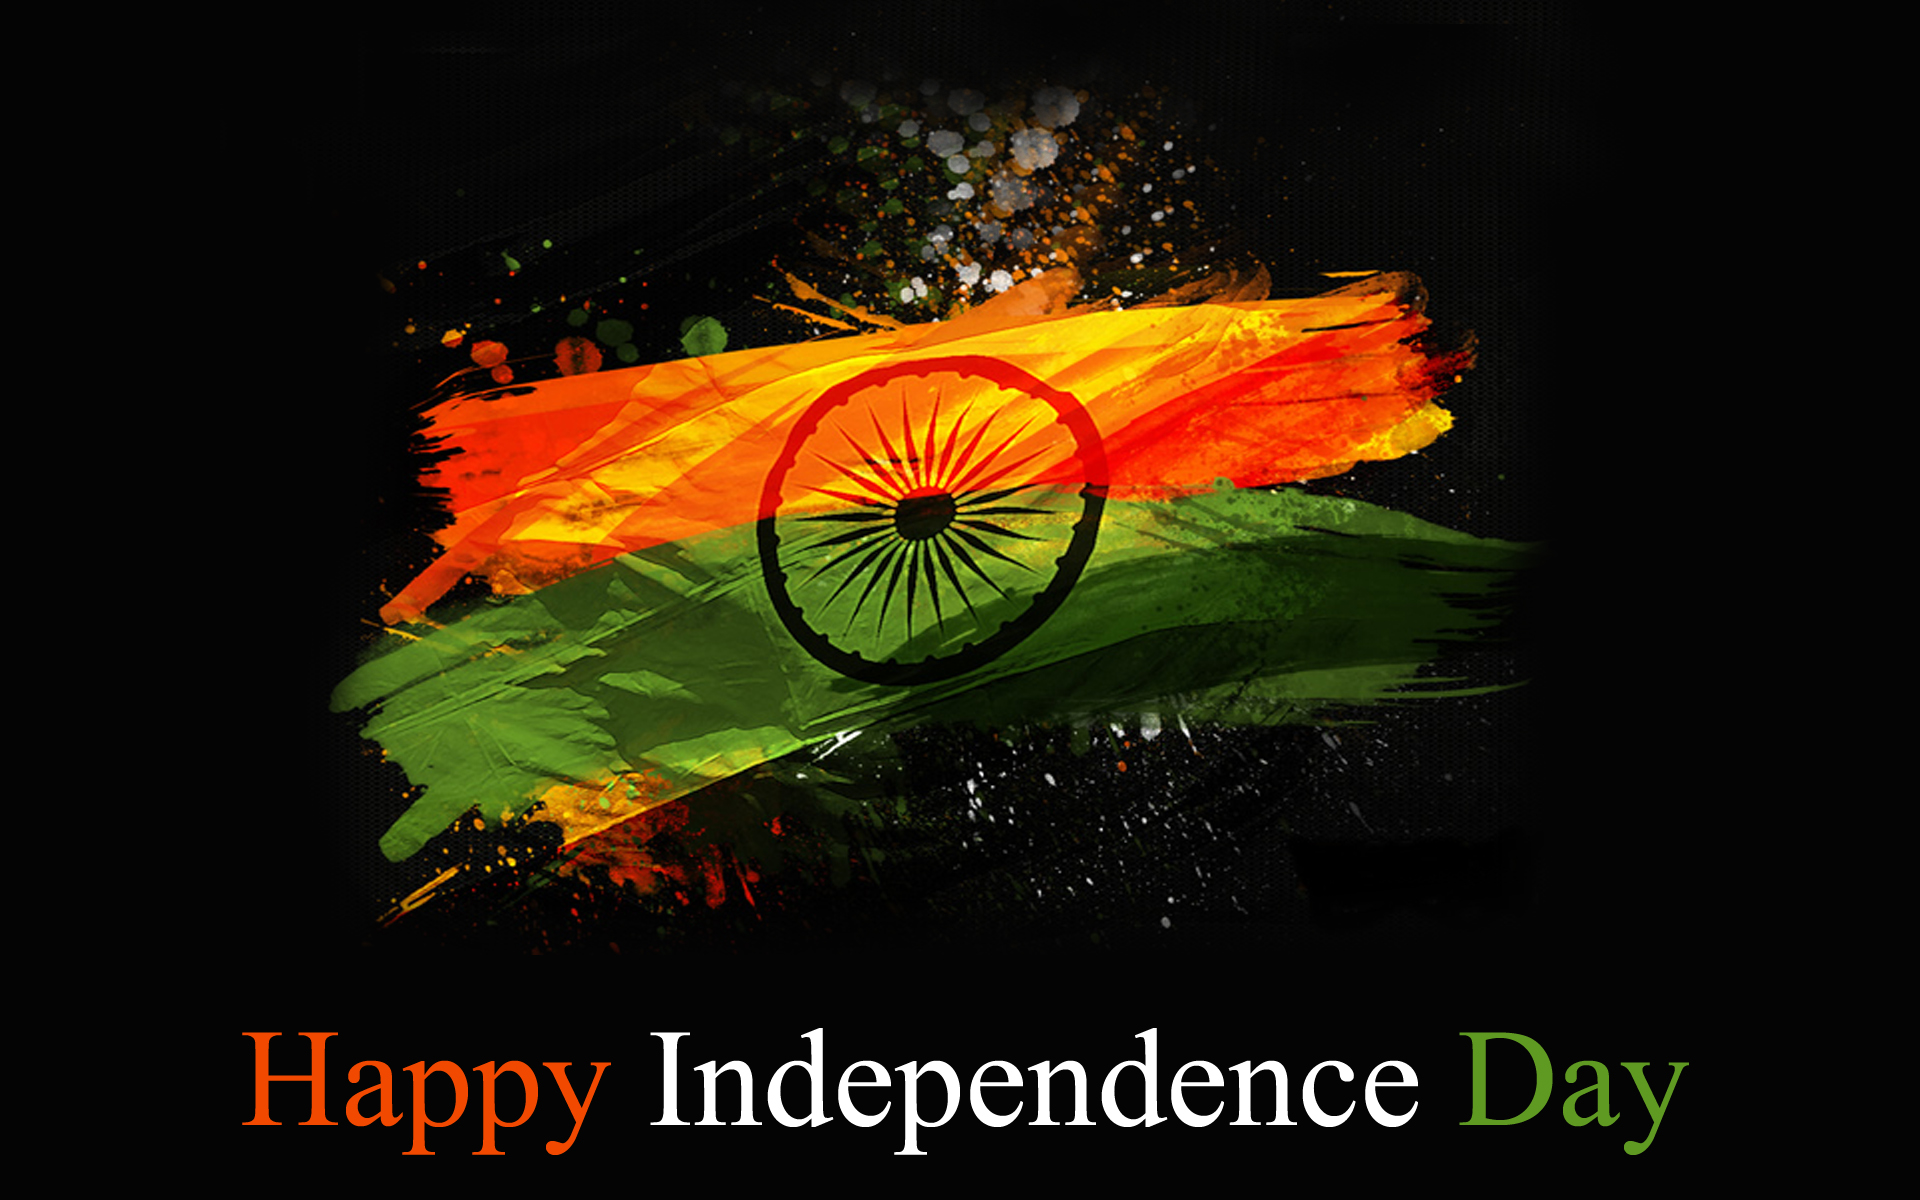 happy independence day hd wallpaper 2015 happy propose day wallpapers 1920x1200